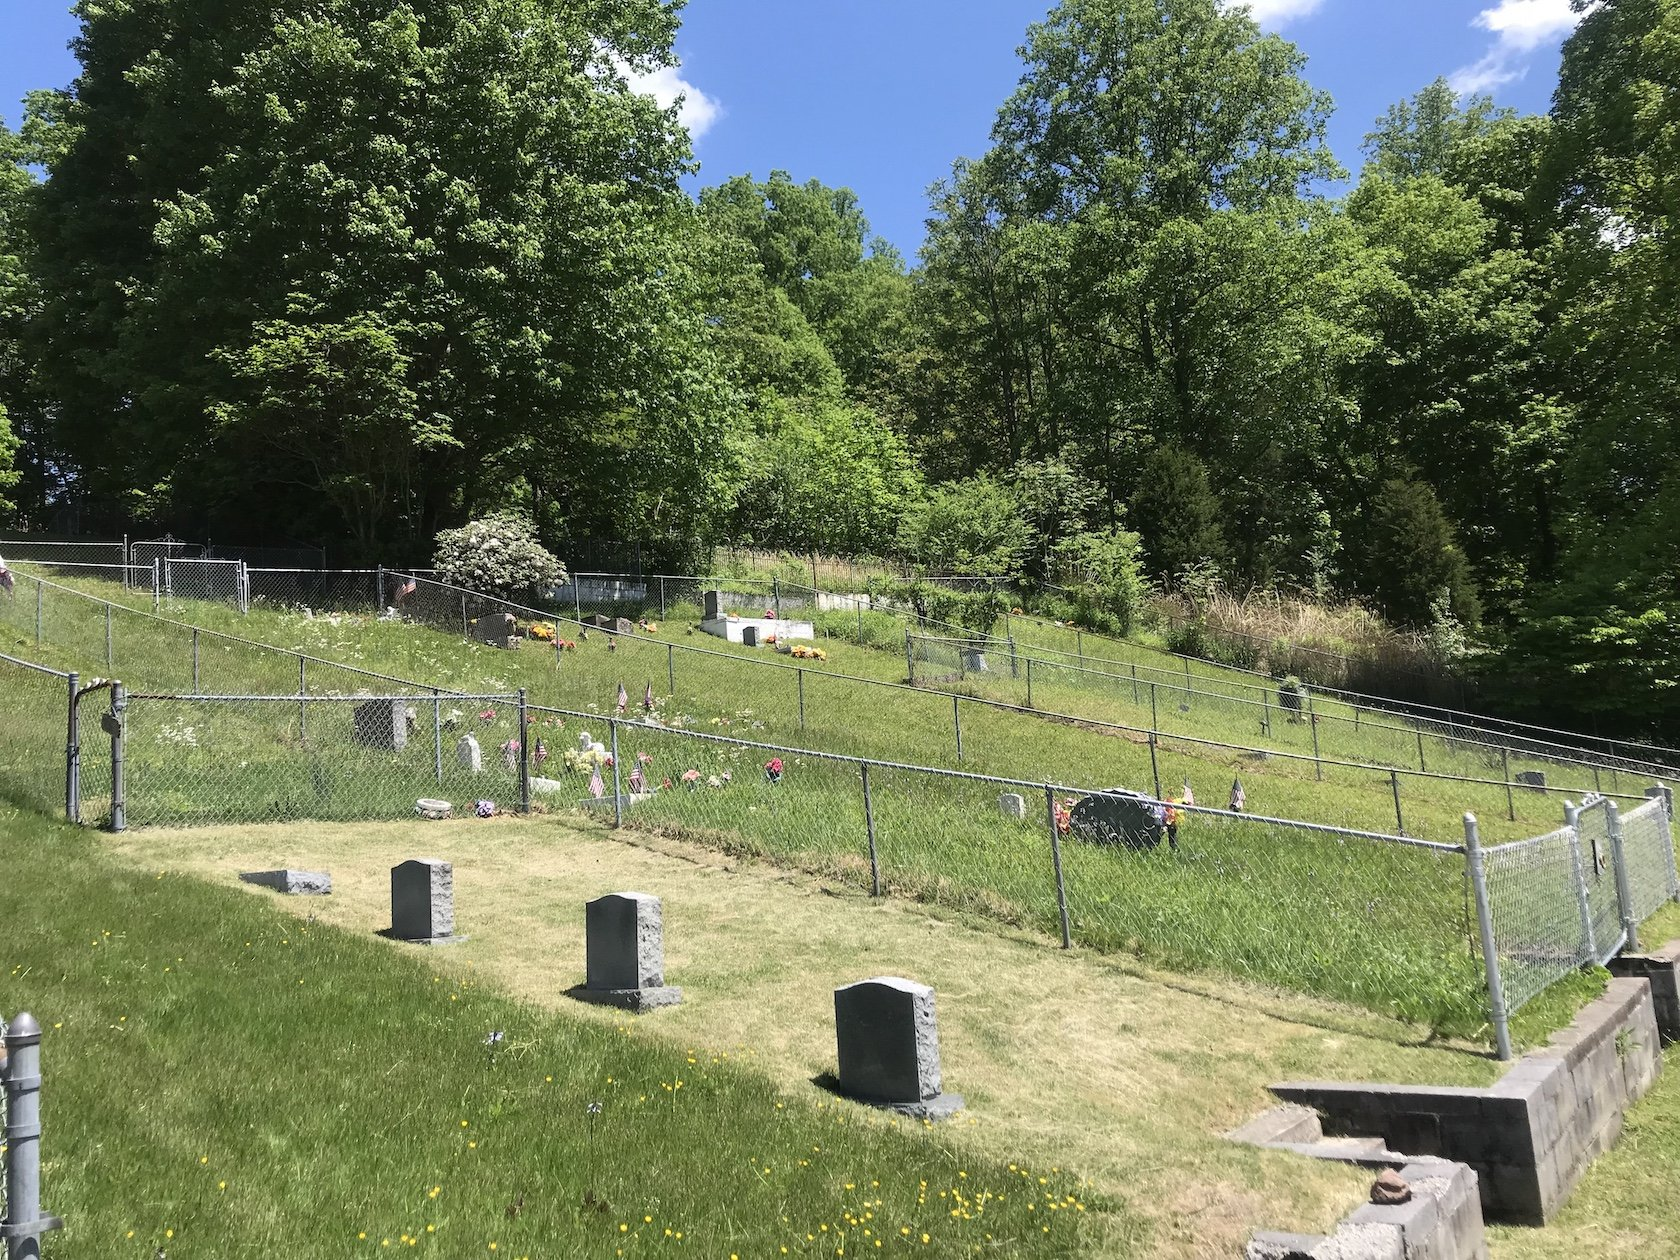 A view of the bottom half of the cemetery.